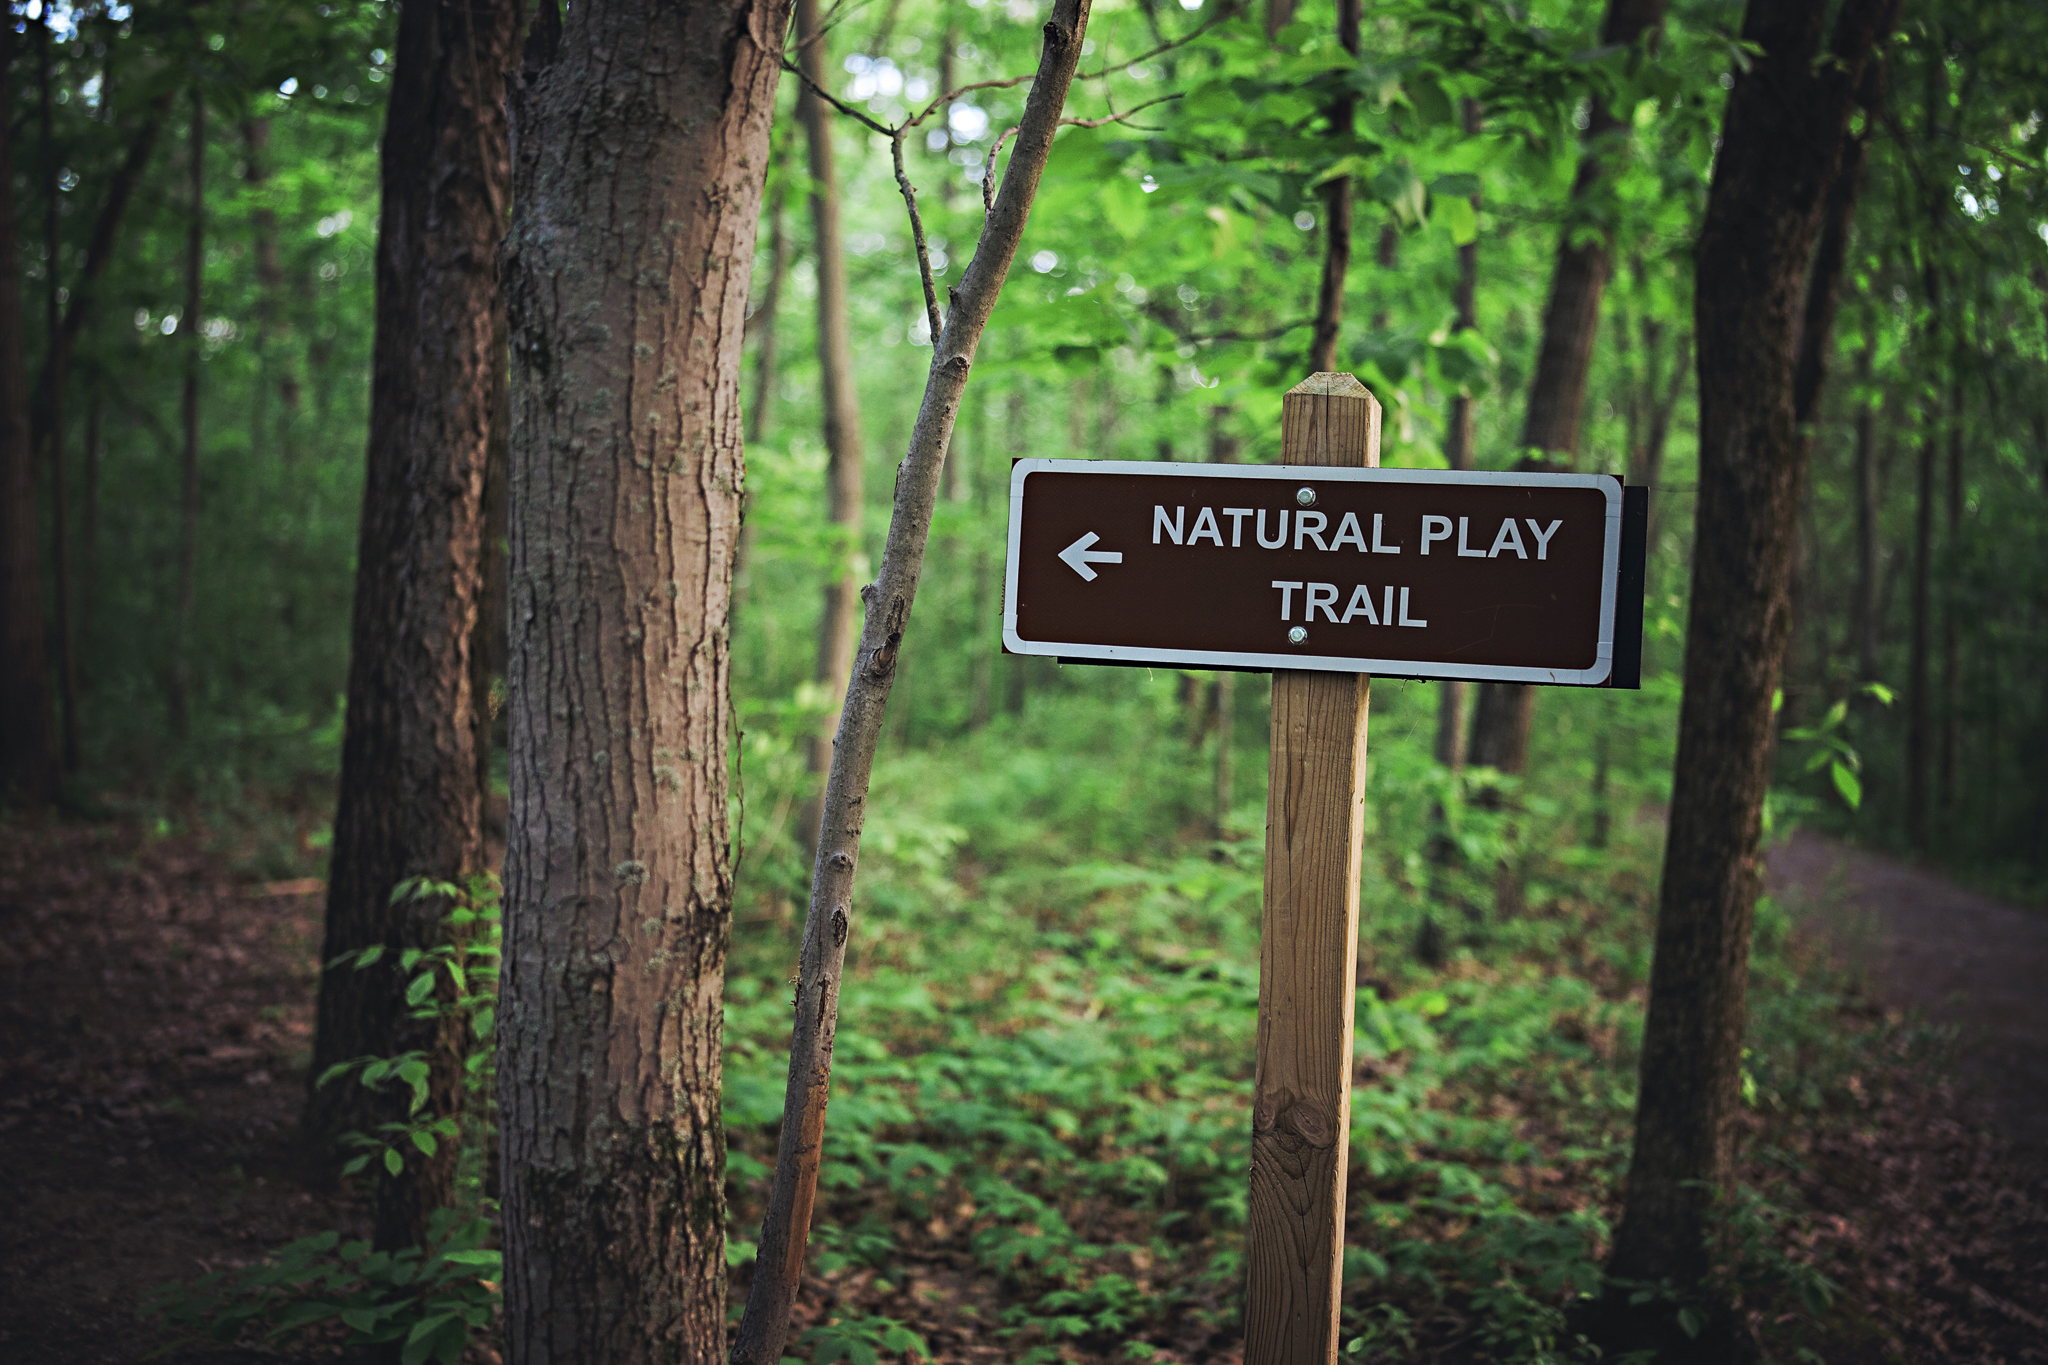 The Natural Play Trail